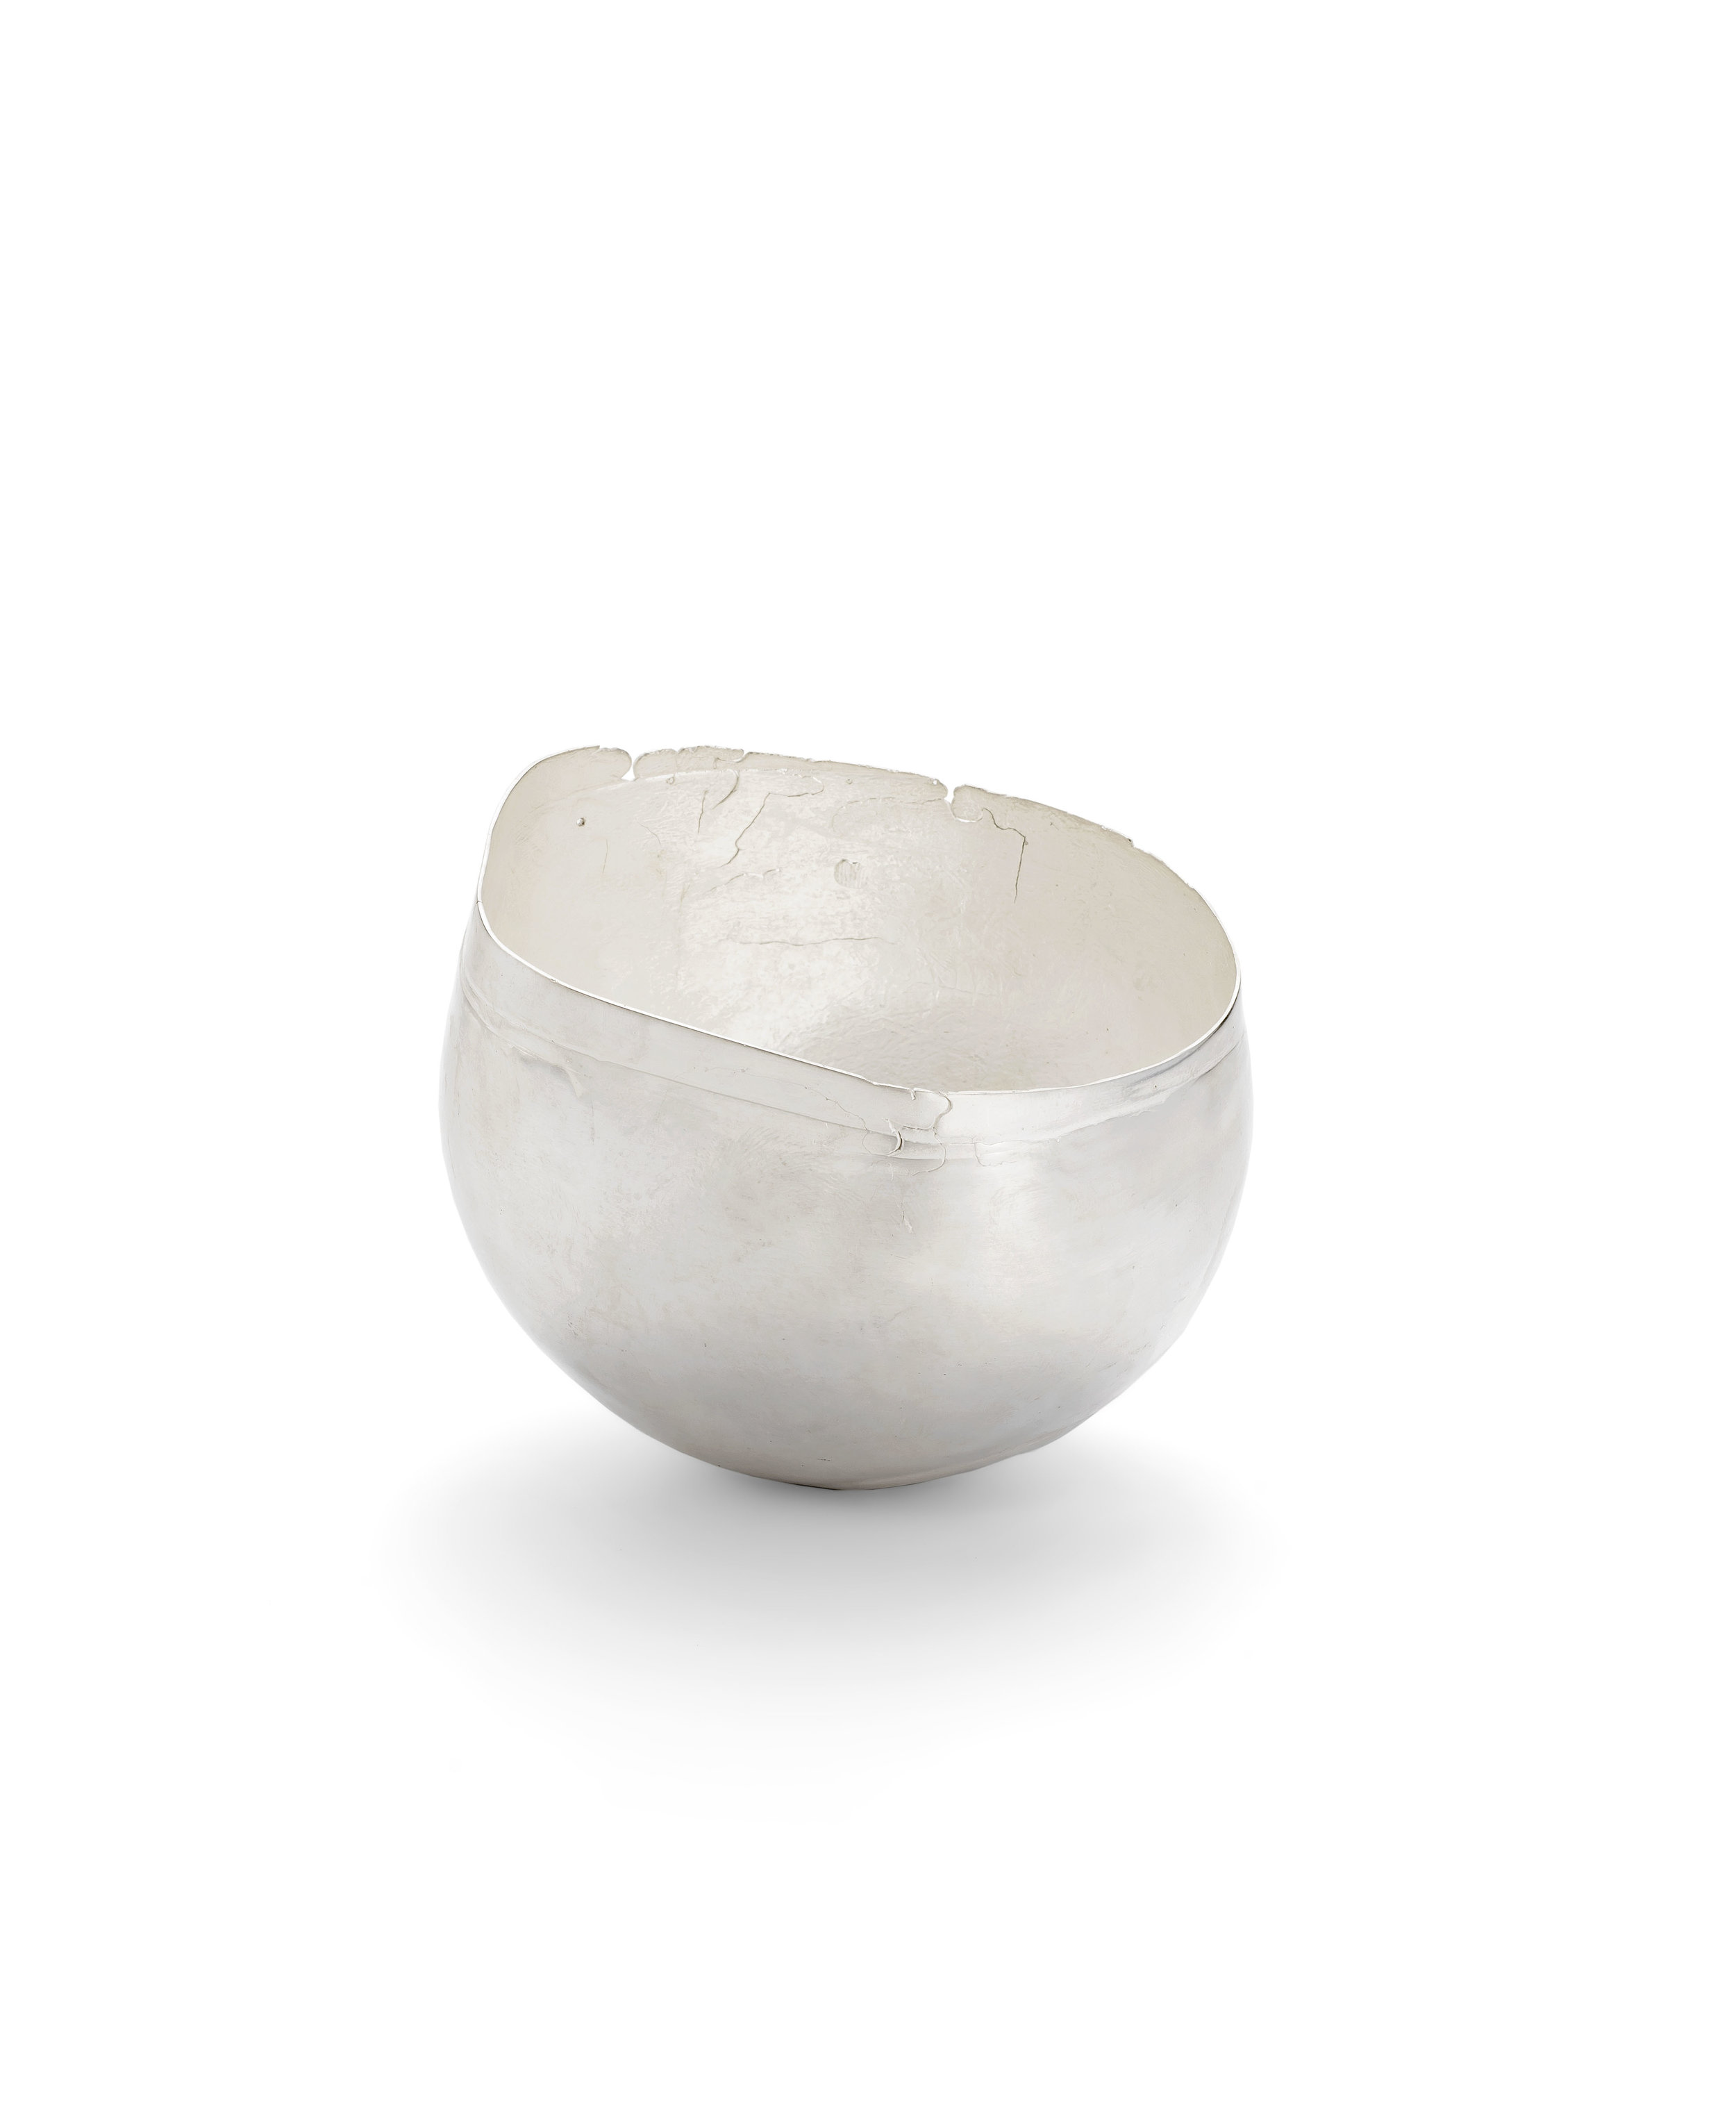 silver bowl inspired by cornish rock pools